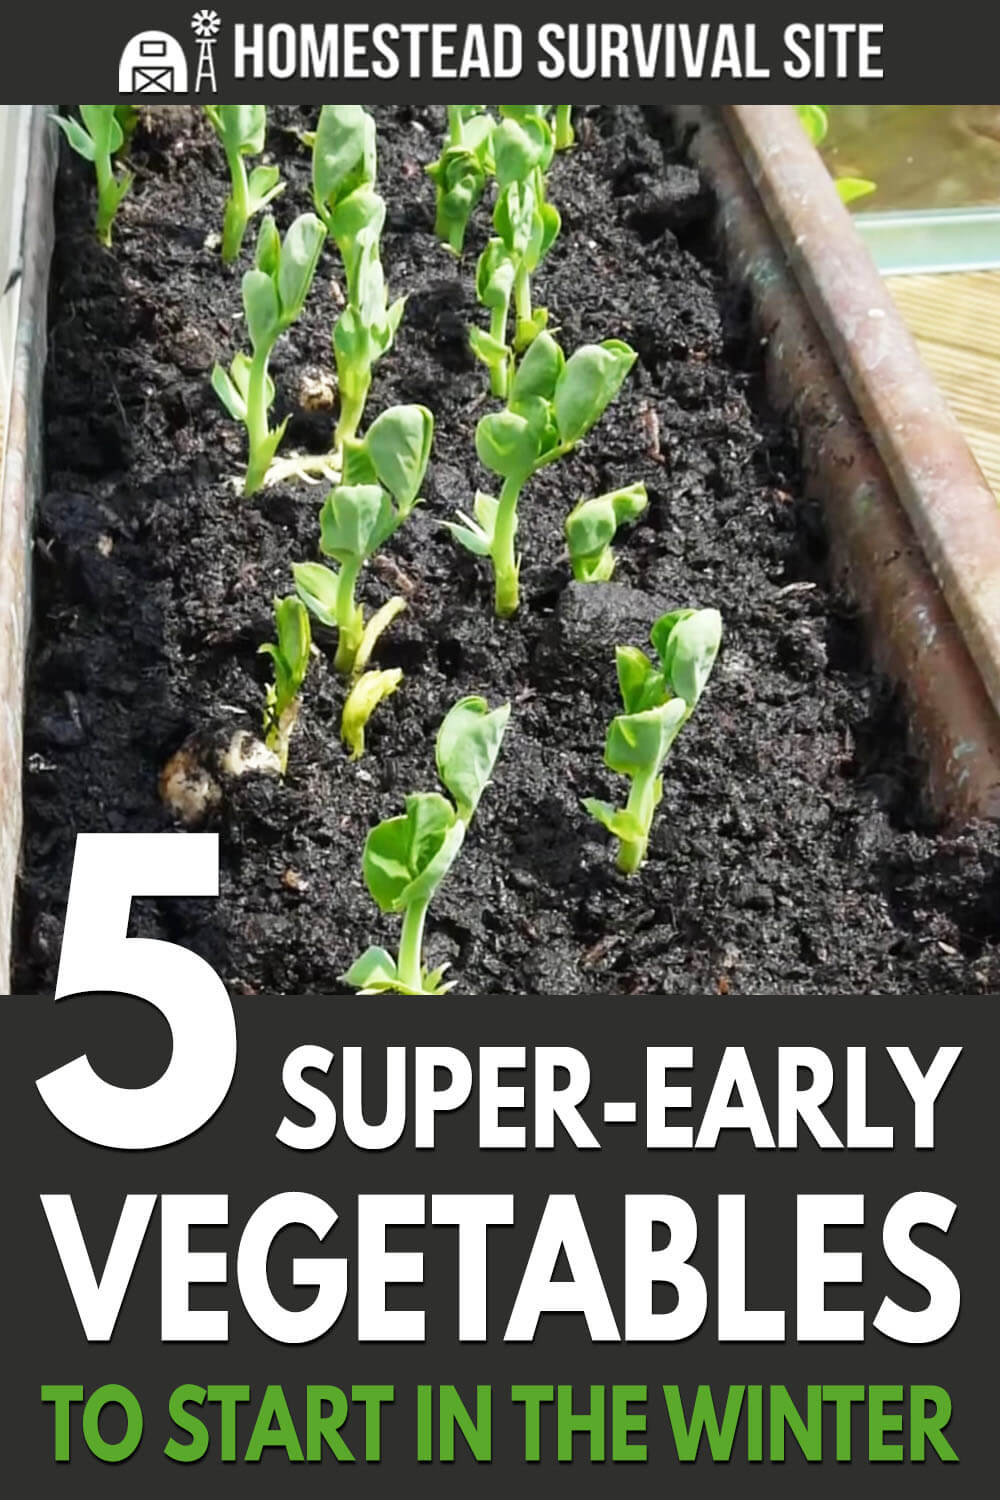 5 Super-Early Vegetables to Start in the Winter